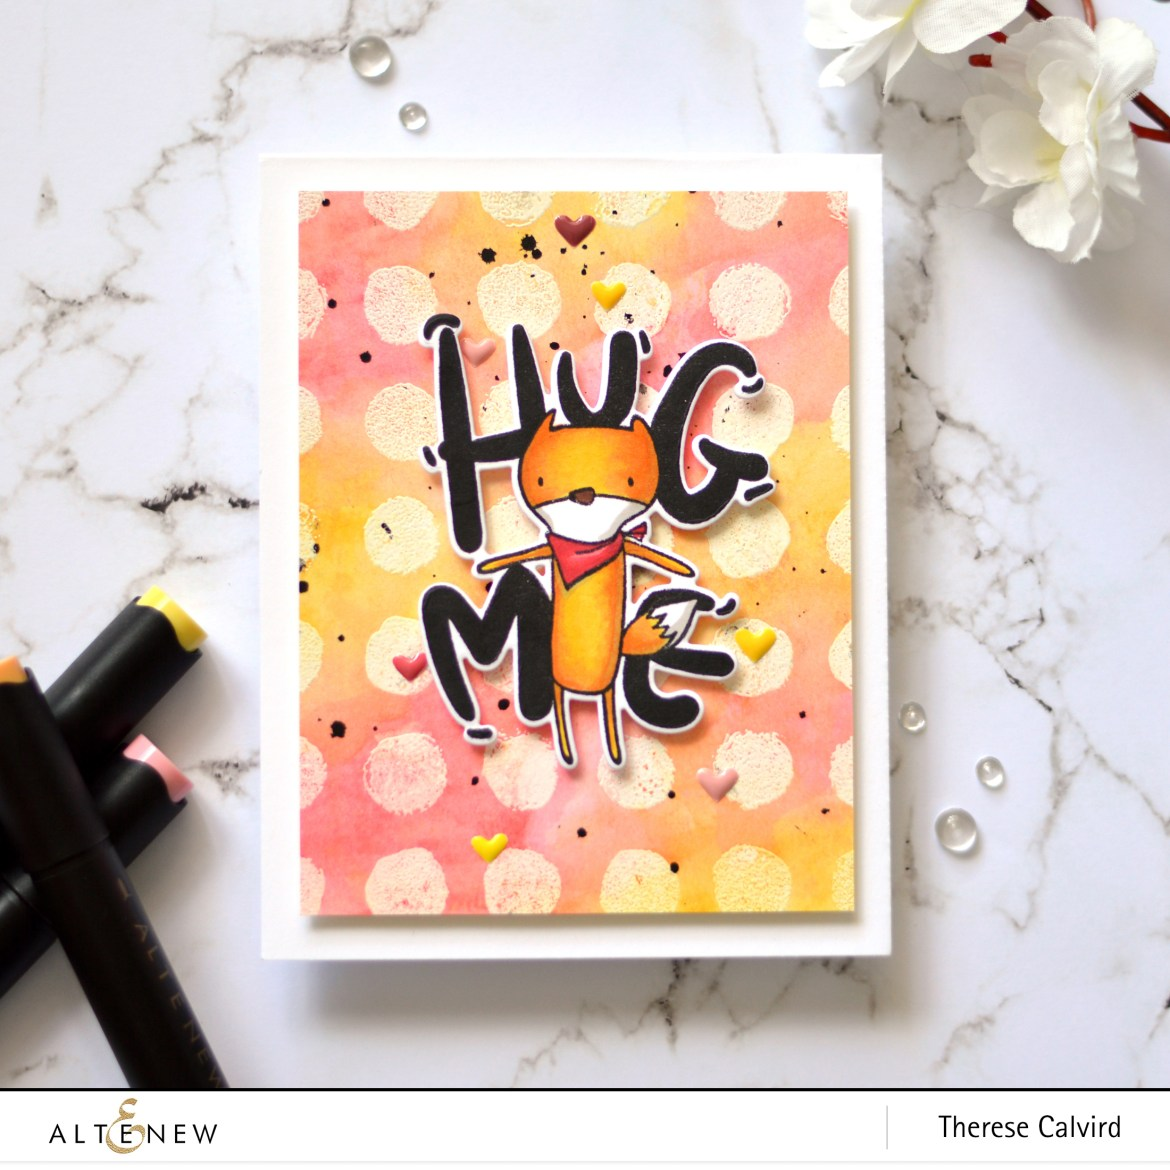 Altenew - Watercolor Dots - Hug Me - Take 2 with Therese (card video) 1 copy